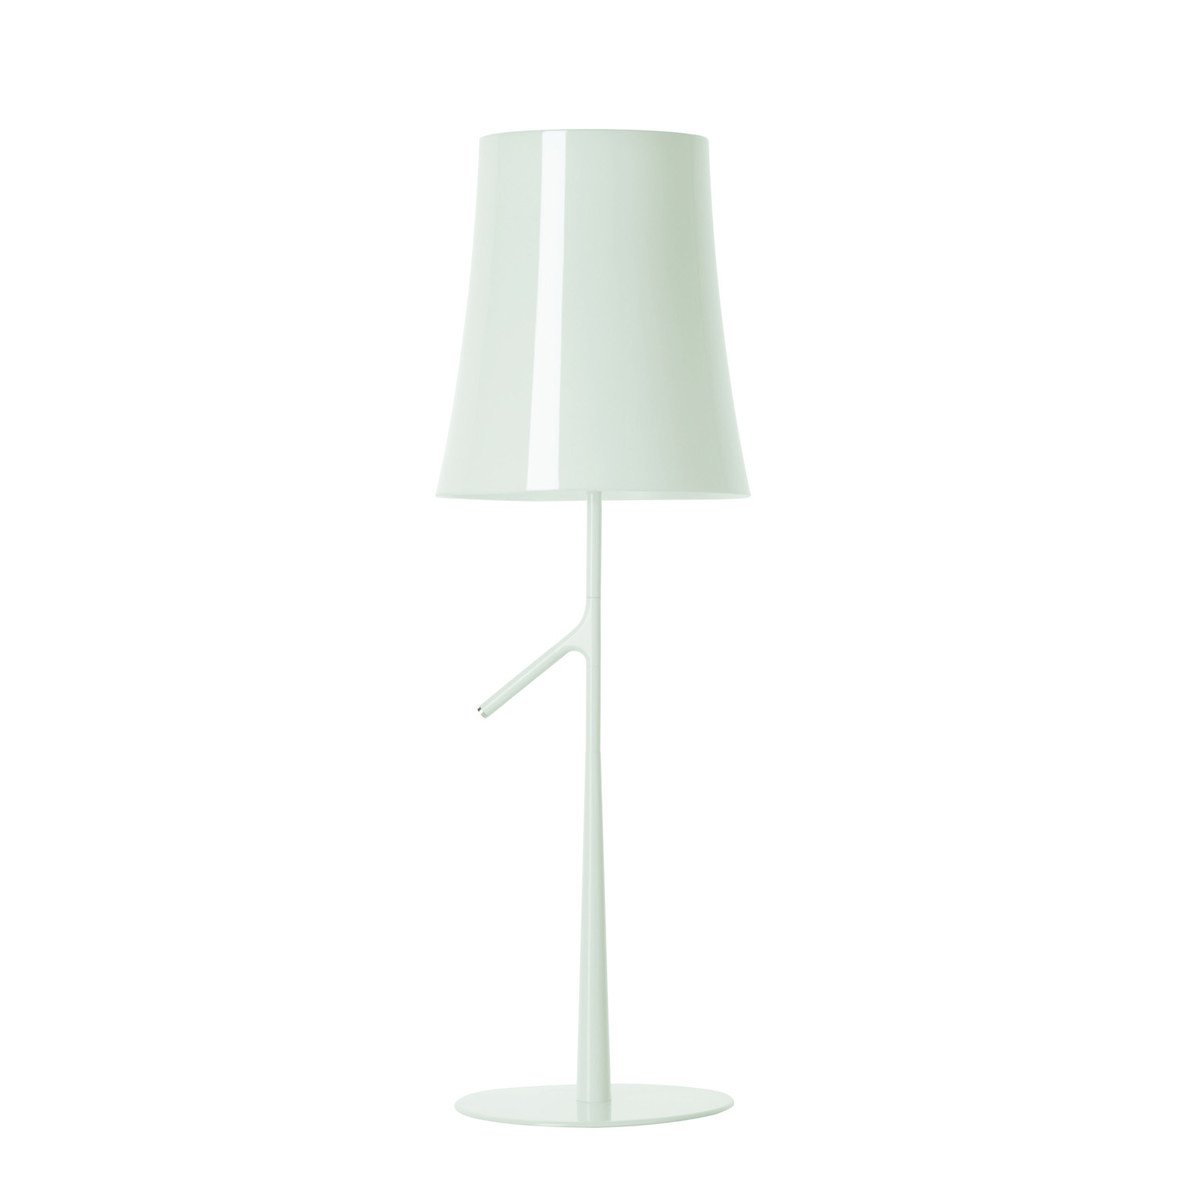 Birdie (Spare lampshade) for Table Lamp white